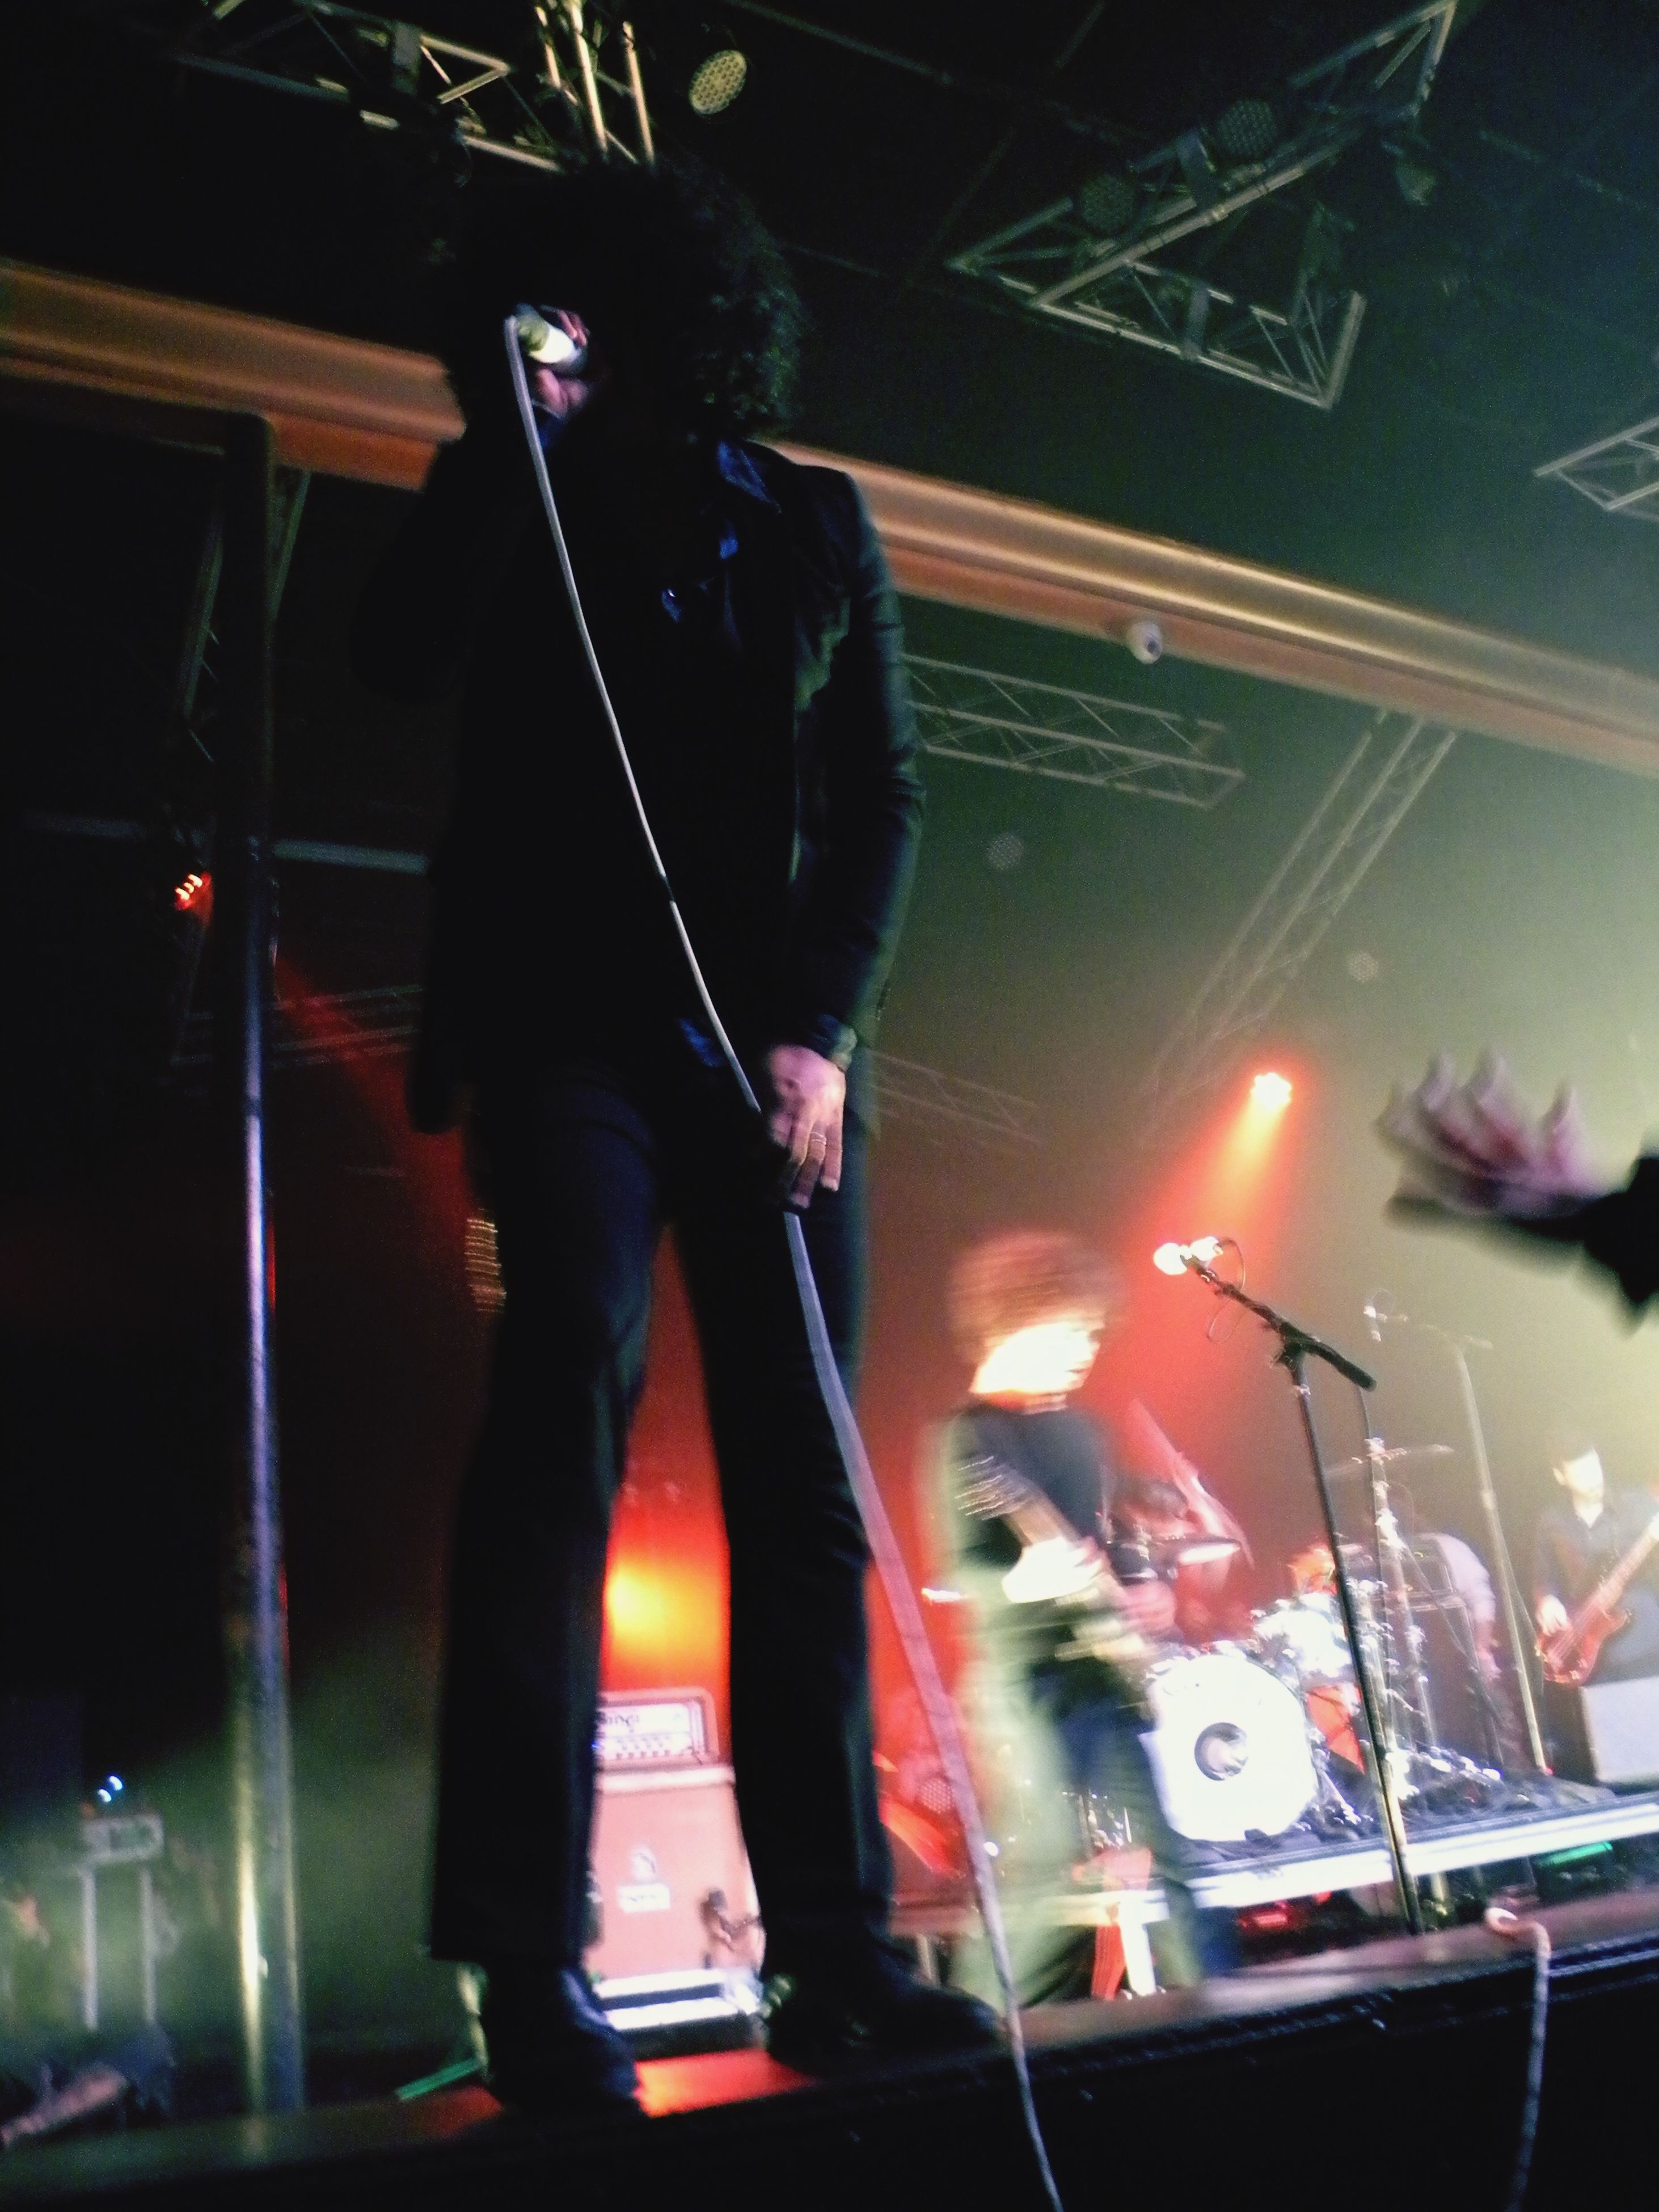 lifestyles, indoors, men, leisure activity, night, illuminated, standing, arts culture and entertainment, person, music, performance, nightlife, casual clothing, full length, skill, holding, three quarter length, blurred motion